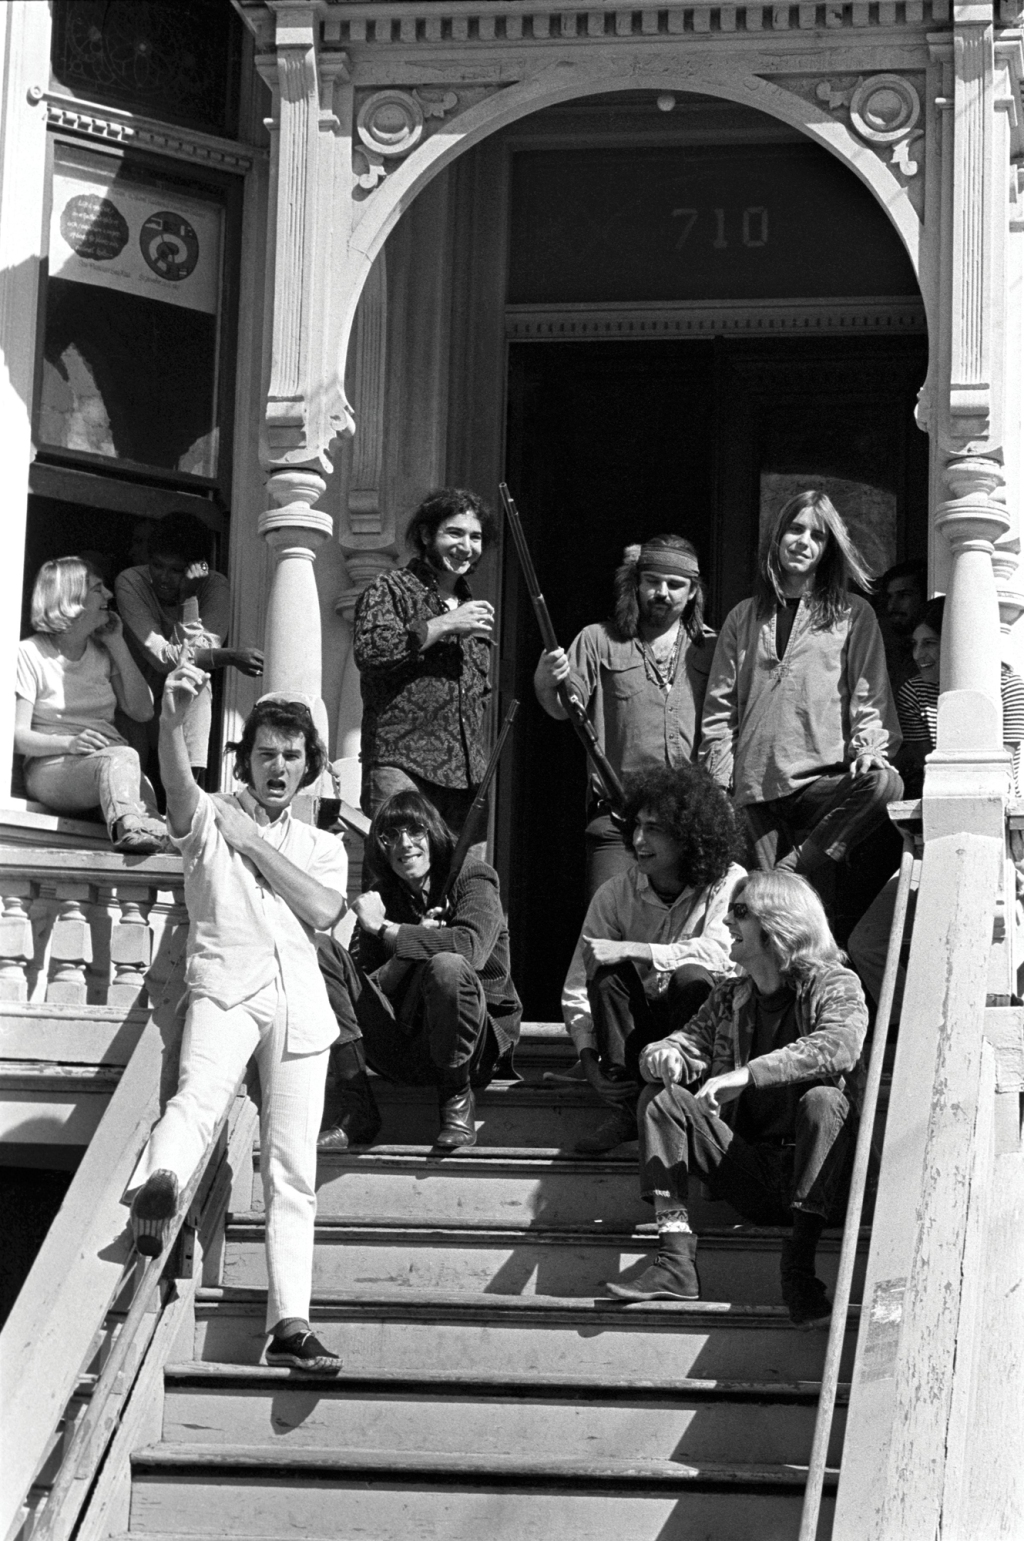 """The Grateful Dead reluctantly posing outside their San Francisco home in 1967 after a drug bust. """"I thought, 'Oh shit, if I get out of here with my life, I'll be lucky,'"""" Wolman recalls. """"They were just flipping me the bird, pointing their guns at me, having a great old time at my expense. I had a problem gathering them together out on the porch. They said, 'Well, who are you? Where are you from?"""" I said 'Rolling Stone.' They said, 'What's Rolling Stone?' We hadn't even published [the first issue] yet."""""""